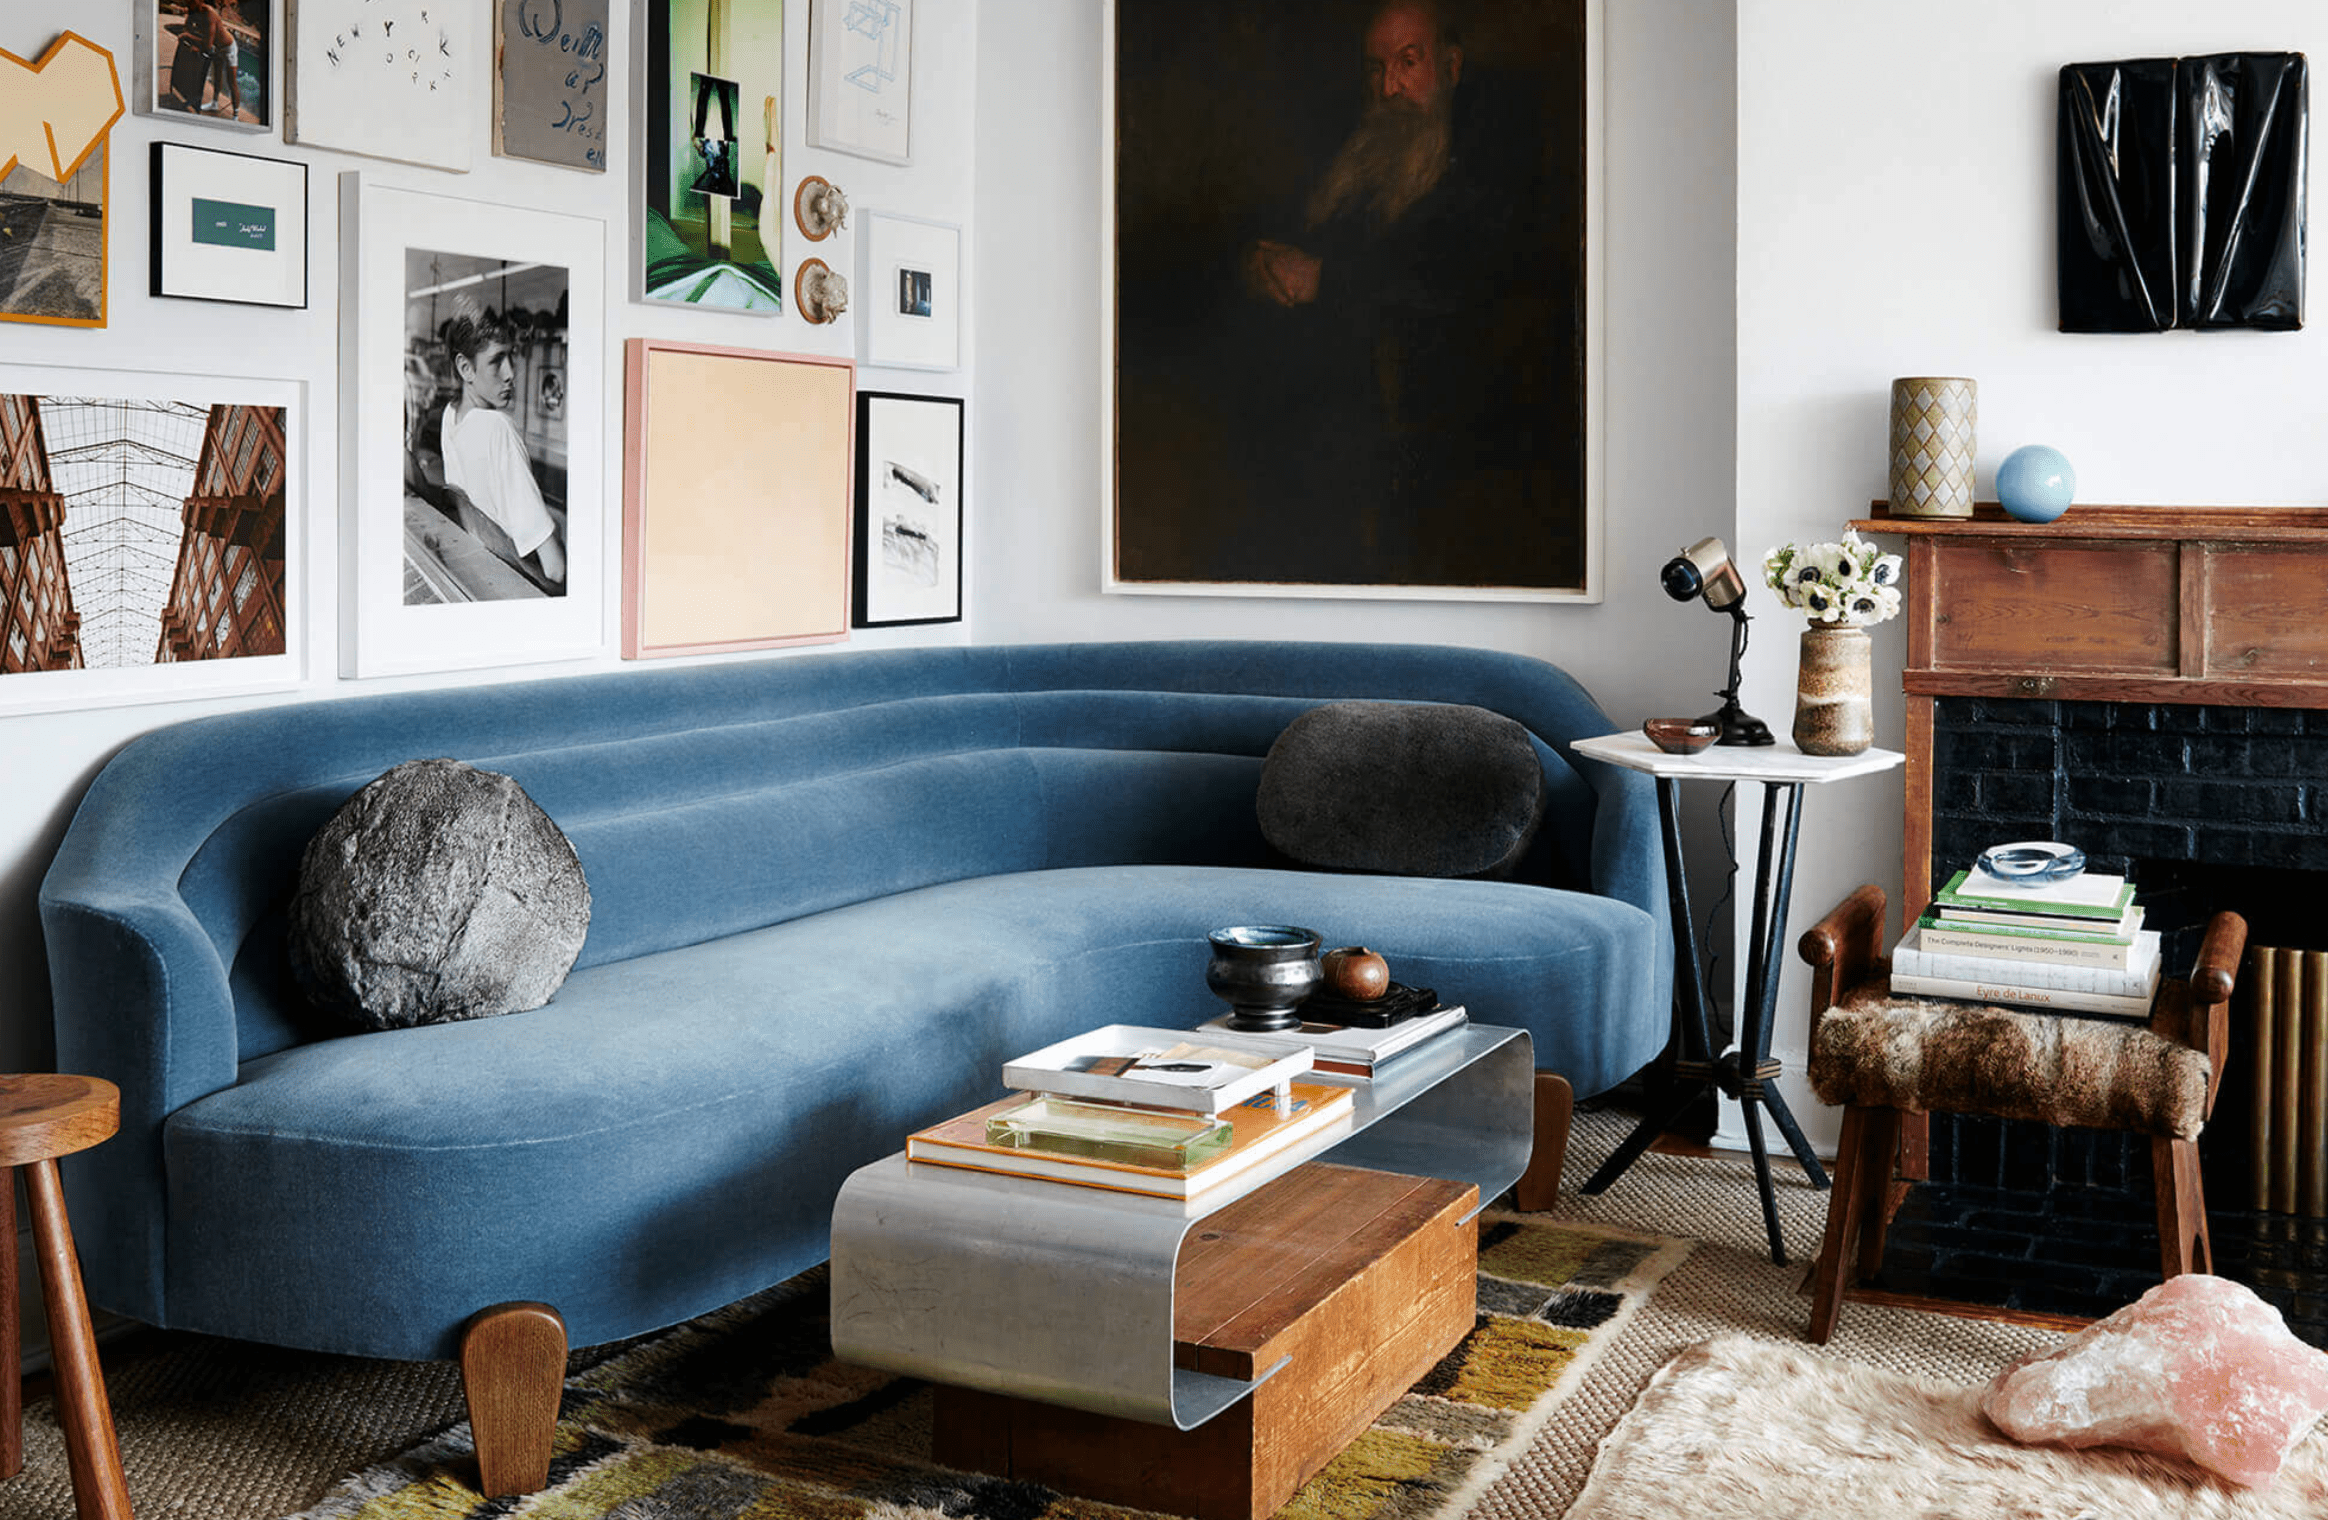 A living room with a sleek blue couch, several tables, and a small upholstered stool being used as a table